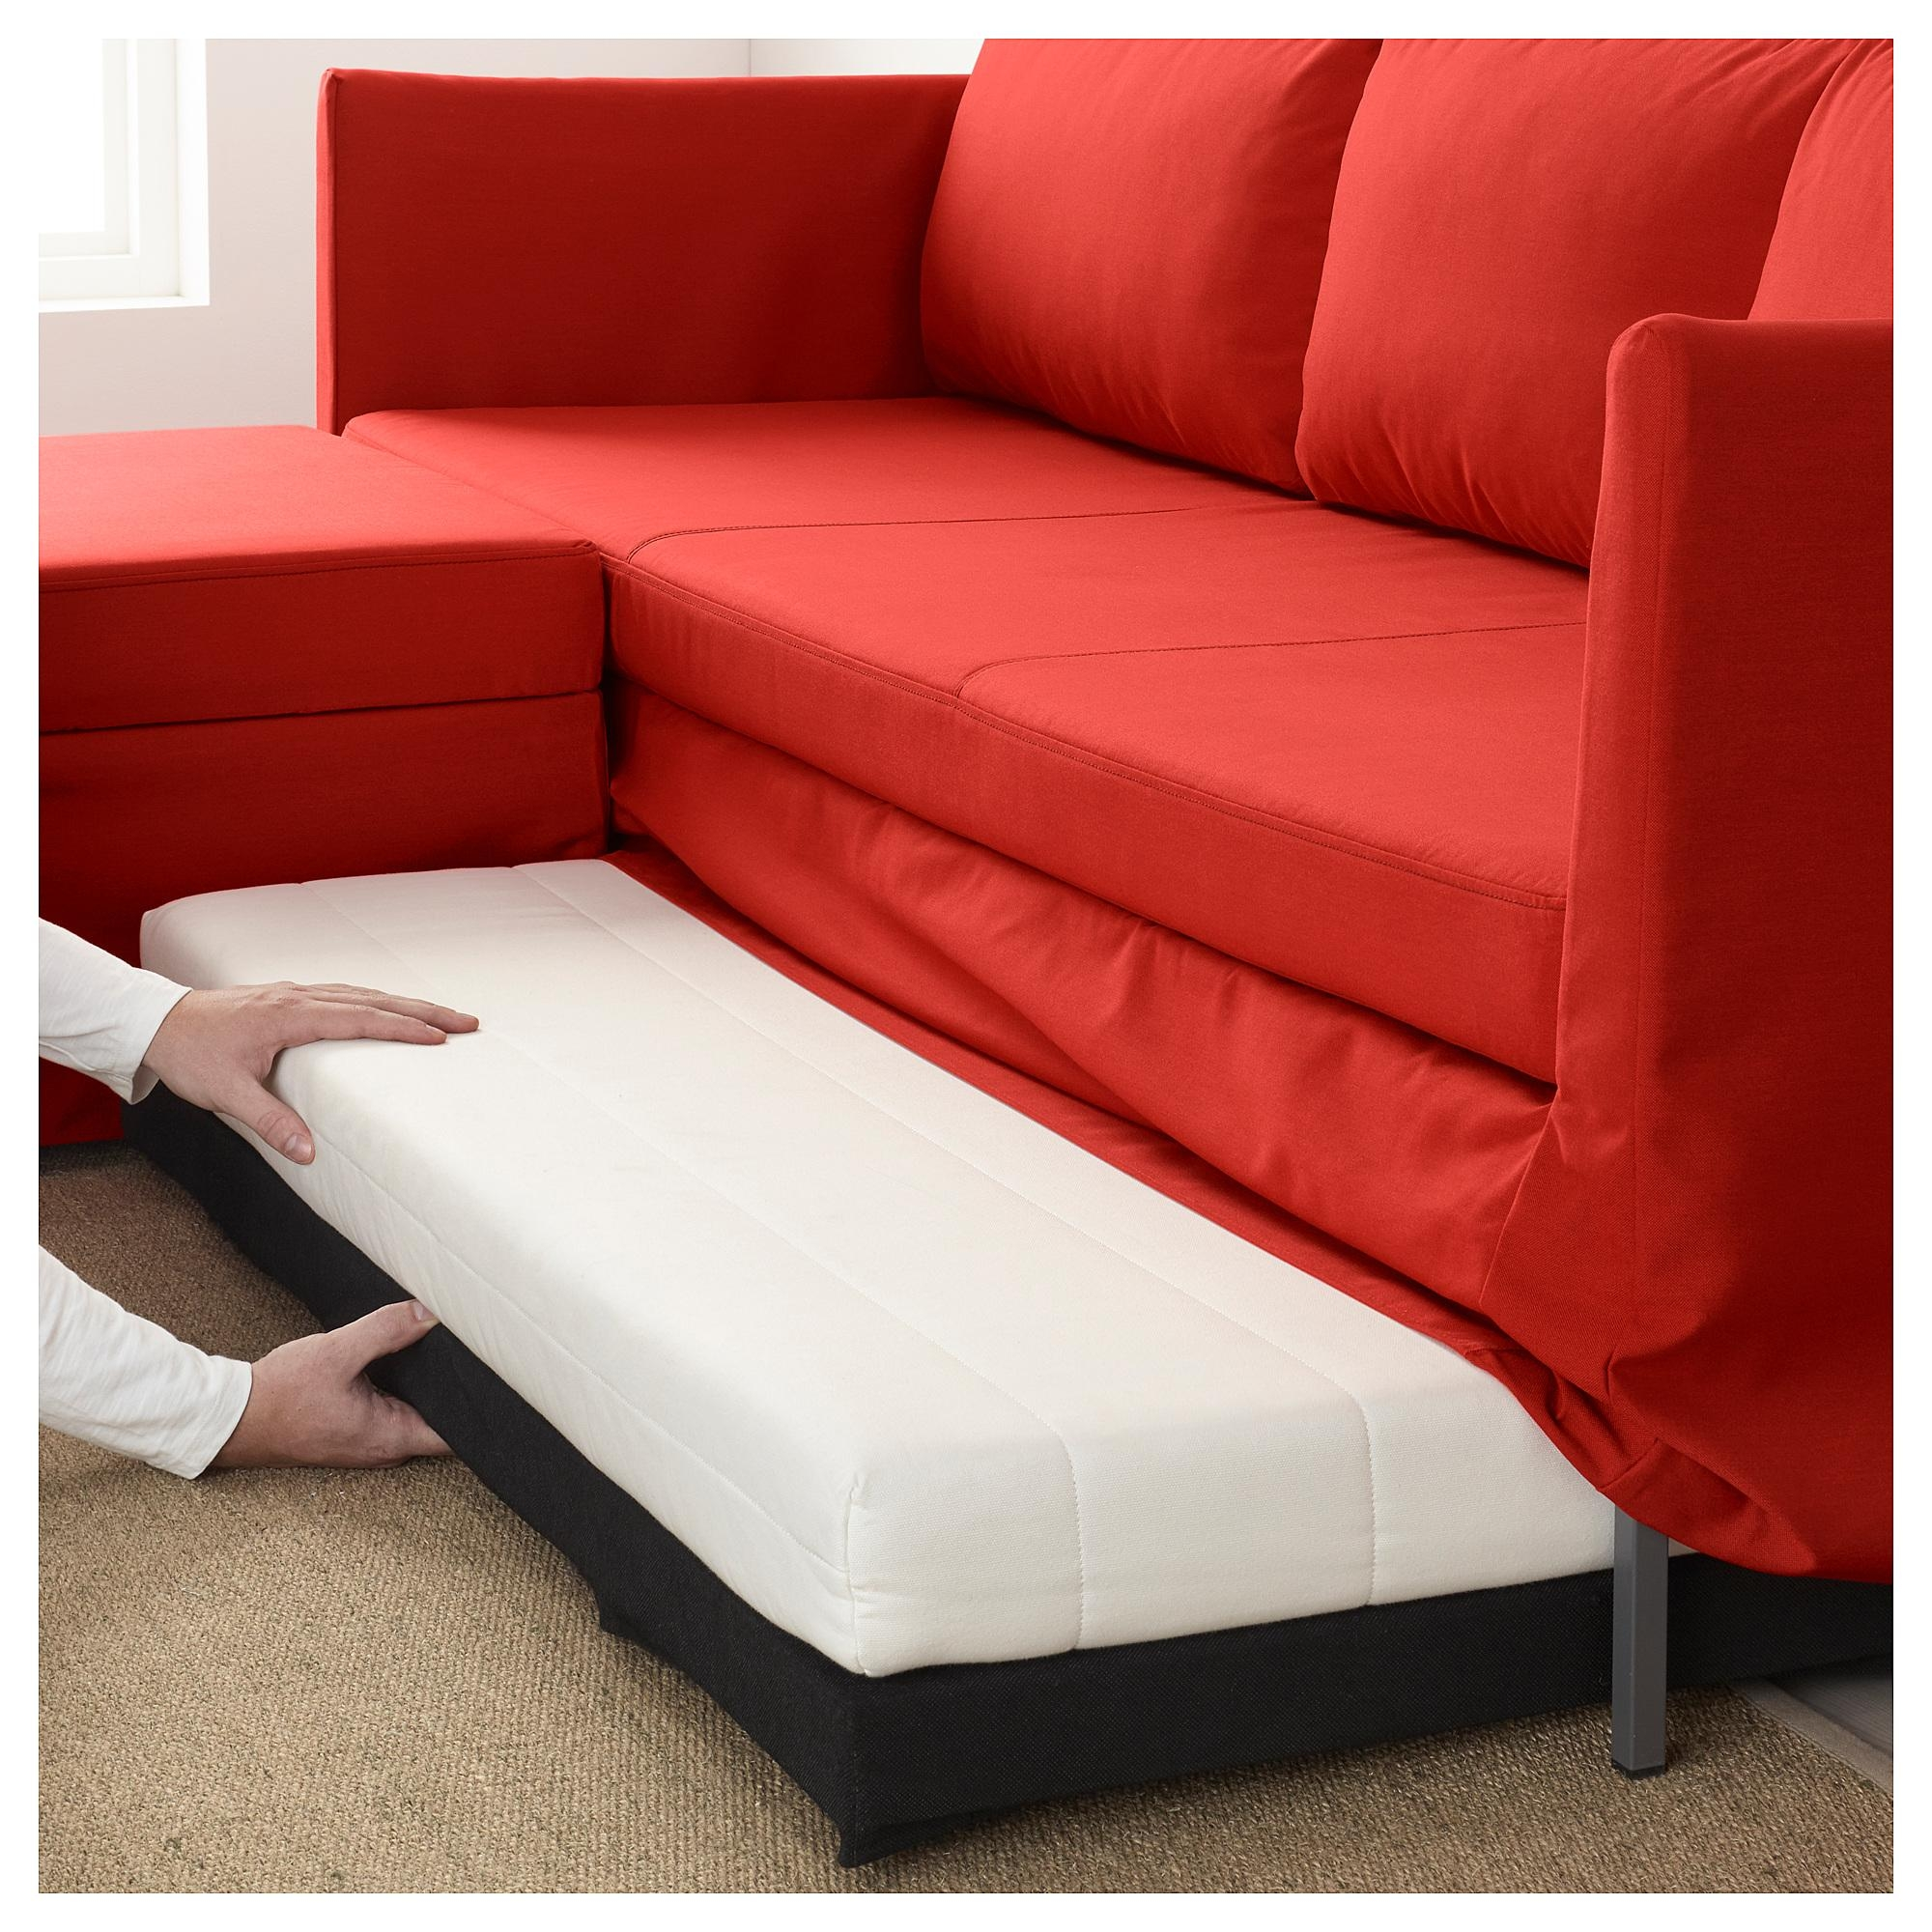 Bråthult Corner Sofa Bed Vissle Red/orange – Ikea With Red Sofa Beds Ikea (View 6 of 20)